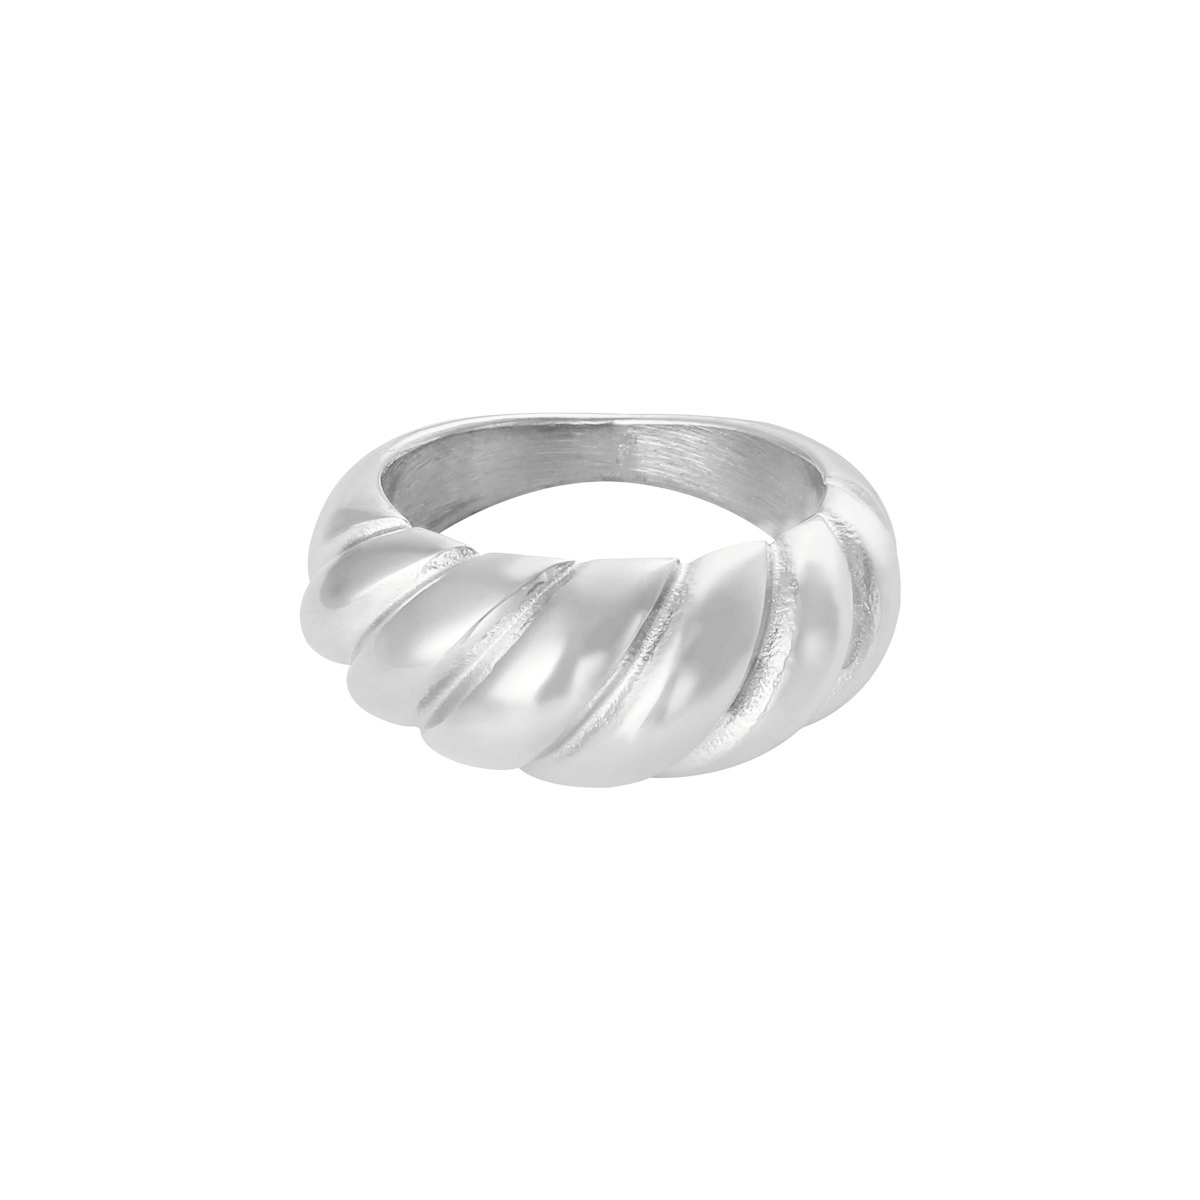 Ring small baguette